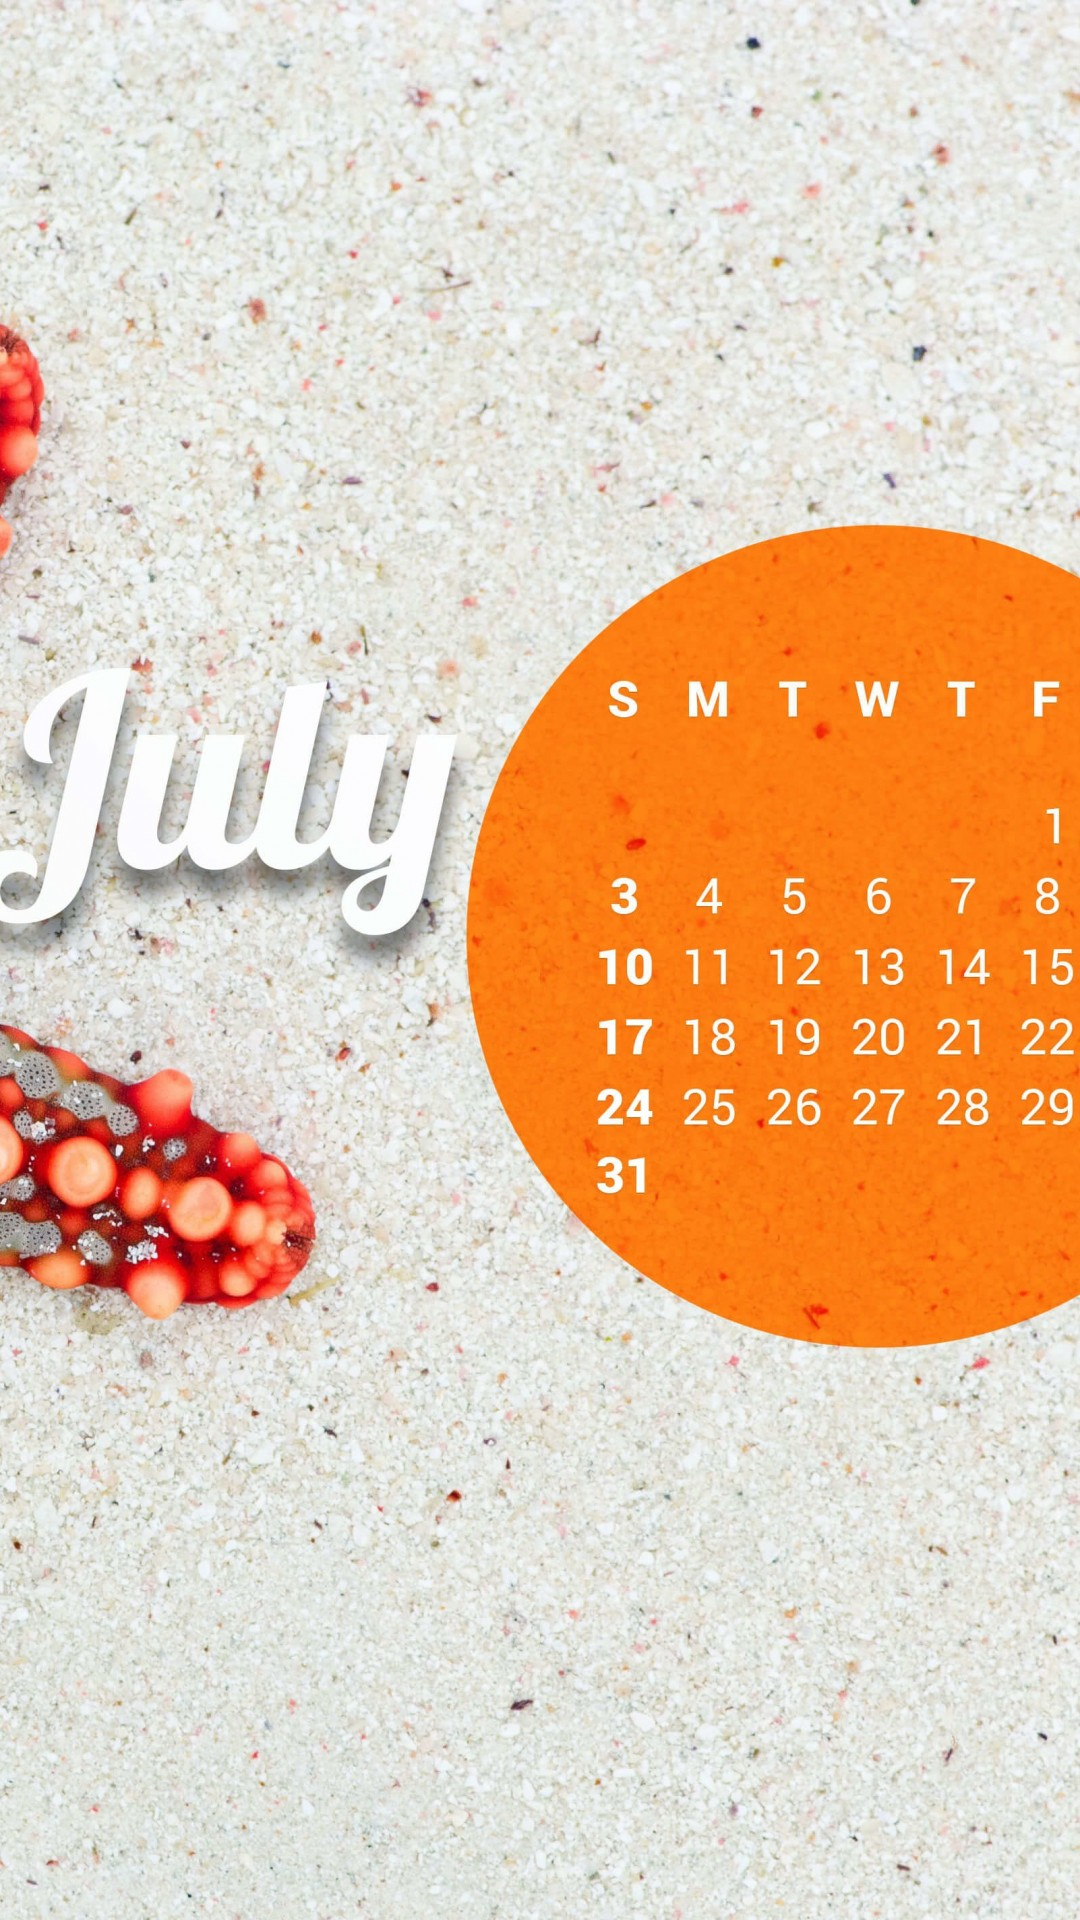 July 2016 Calendar Wallpaper for Google Nexus 5